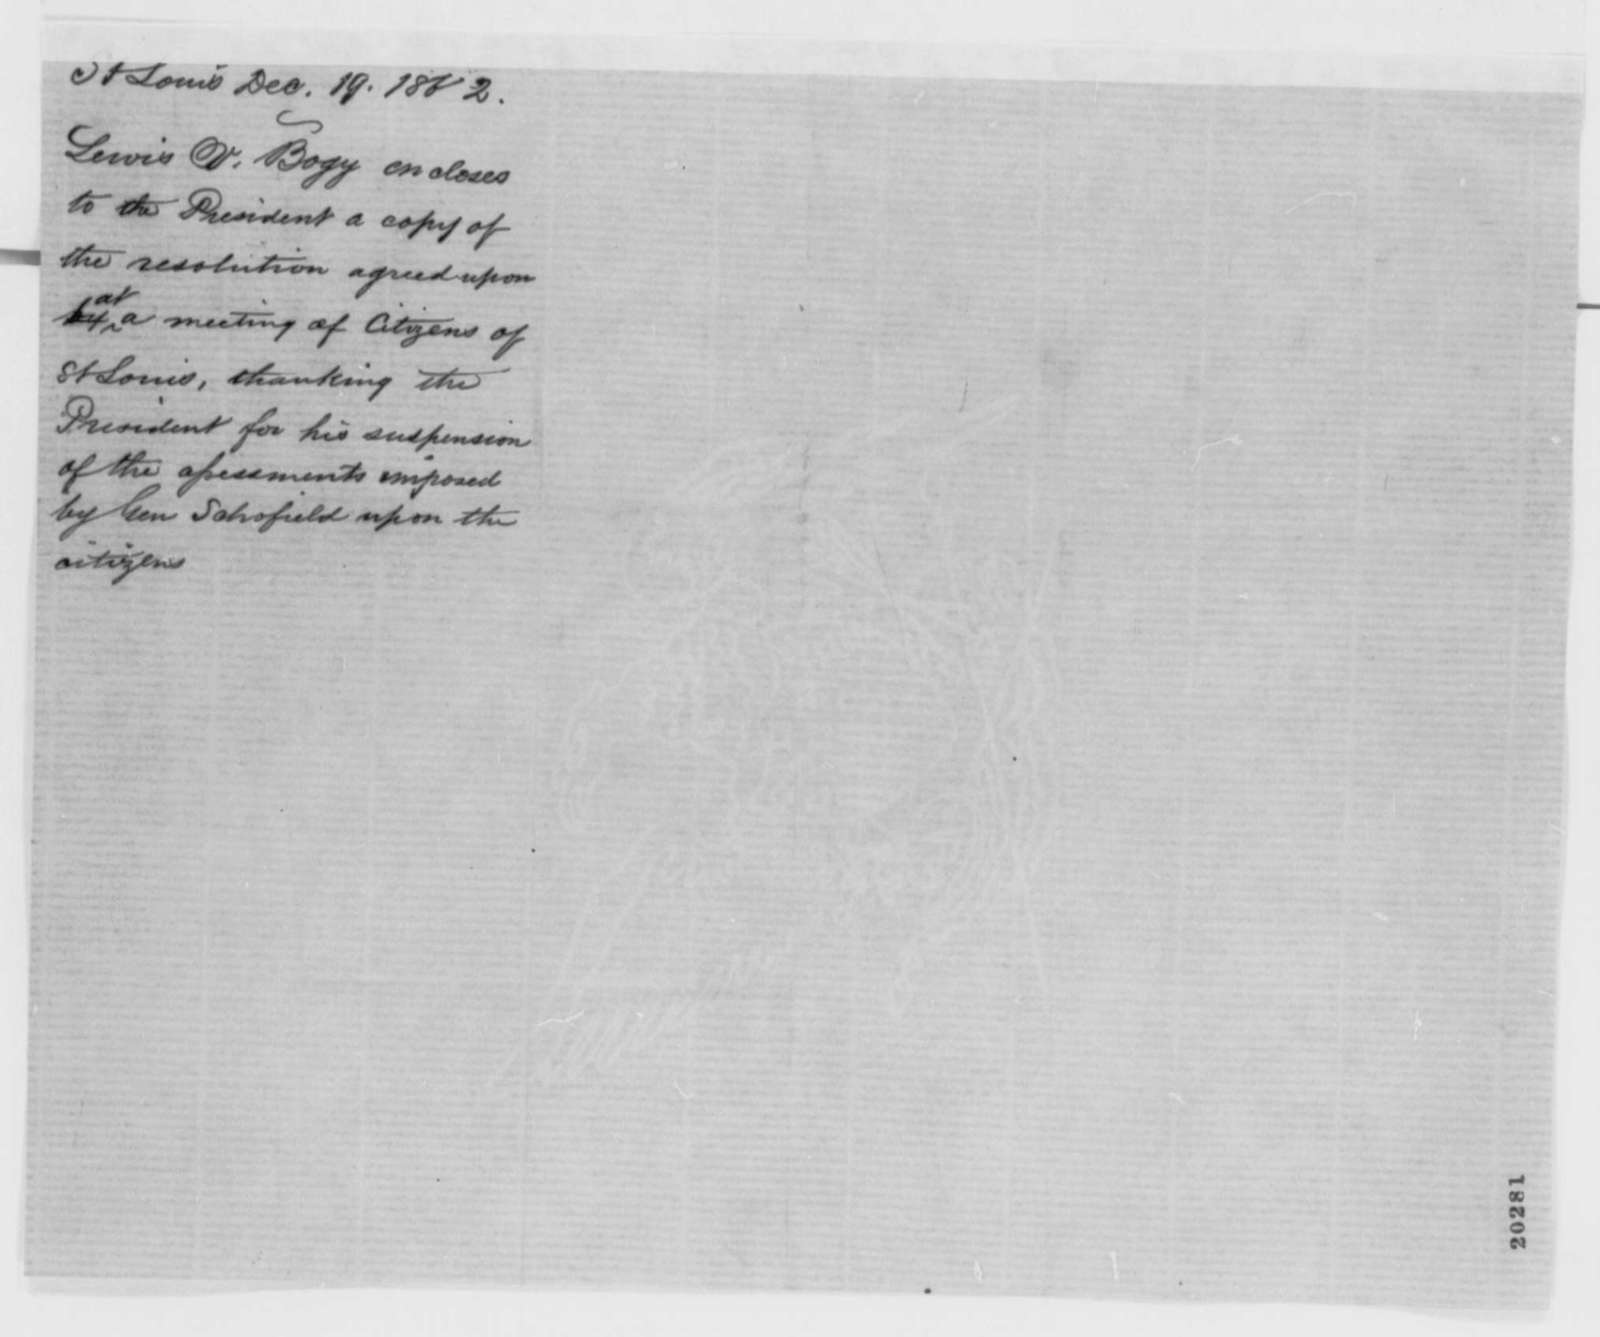 Lewis V. Bogy to Abraham Lincoln, Friday, December 19, 1862  (Cover letter)